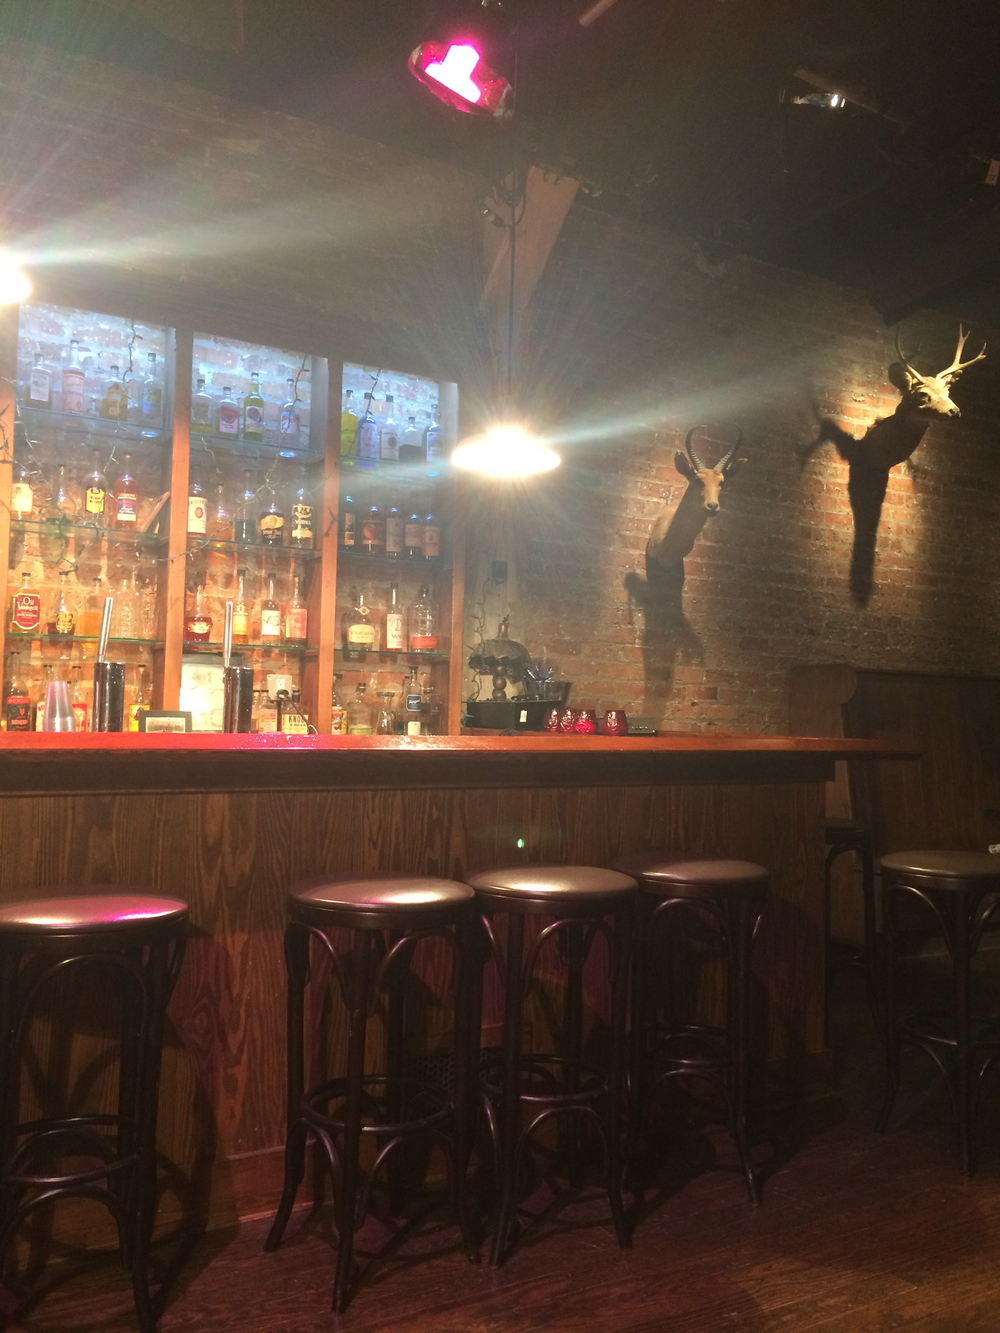 """The """"Speakeasy"""" set, where bottles are filled with colored water due to regulations around serving alcohol in conjunction with nudity. However, according to our guide, the actors have monthly """"employee appreciation parties"""" where they bring in real booze."""